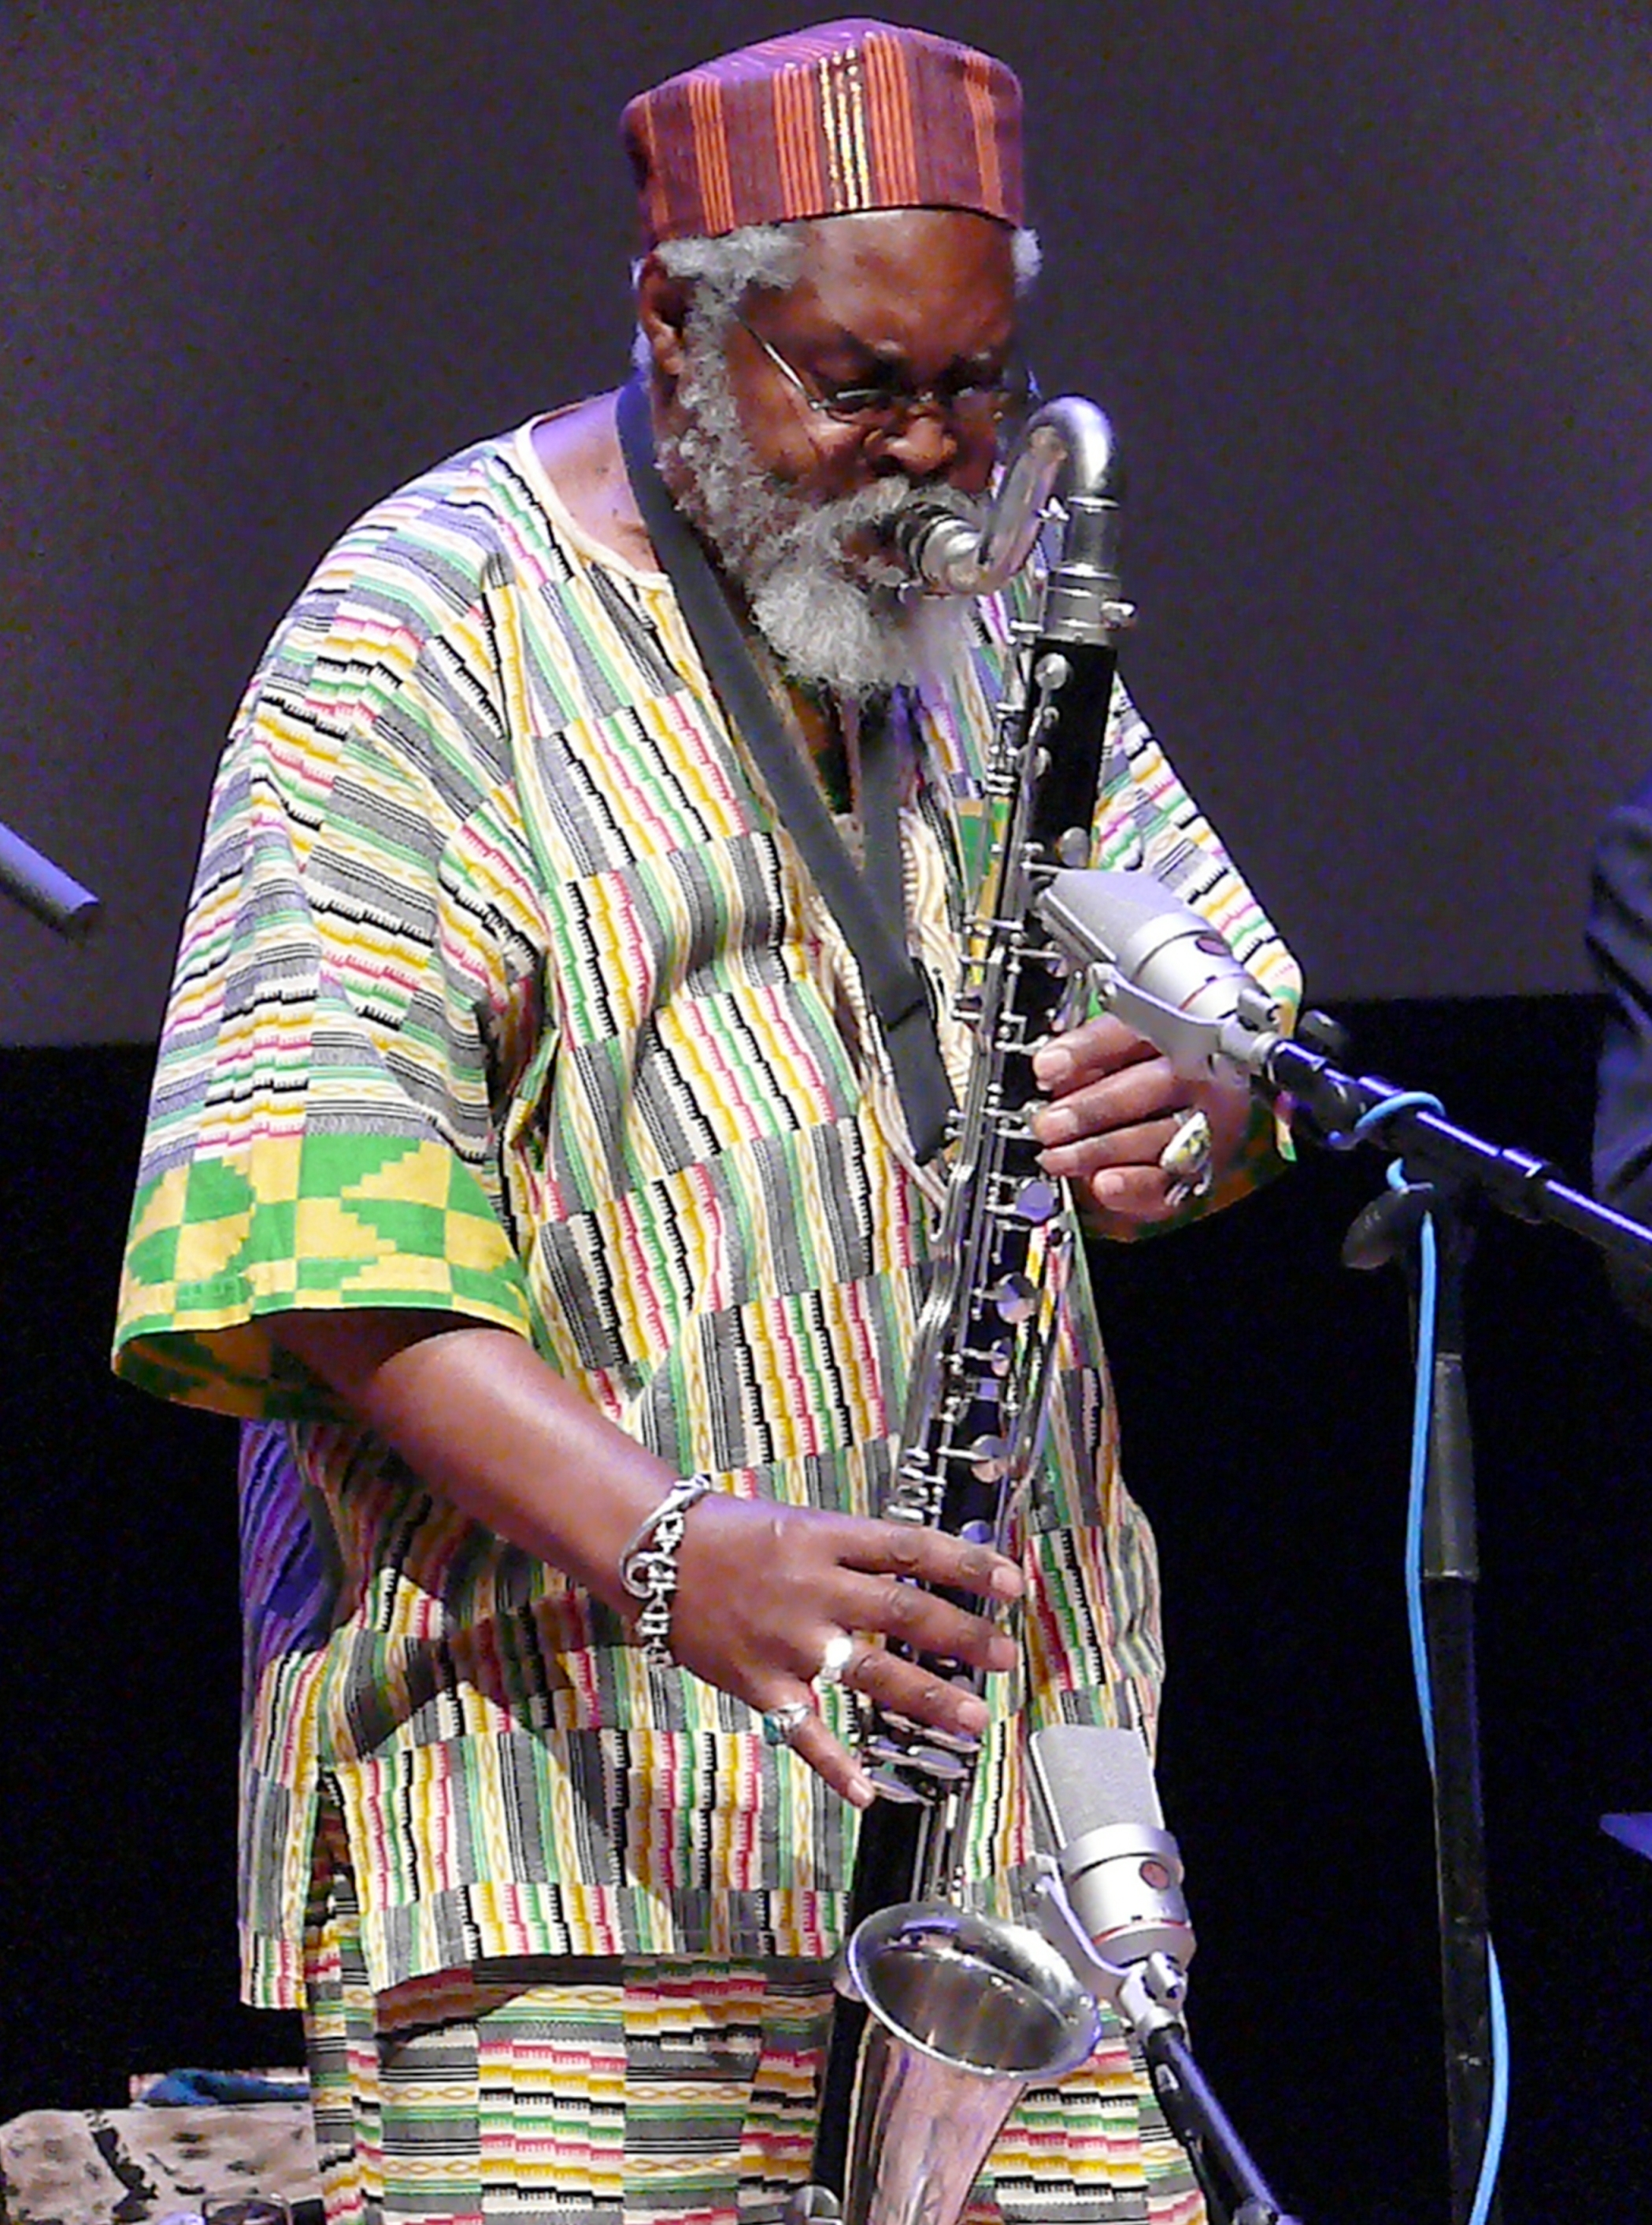 Oluyemi thomas at the vision festival, new york in june 2013